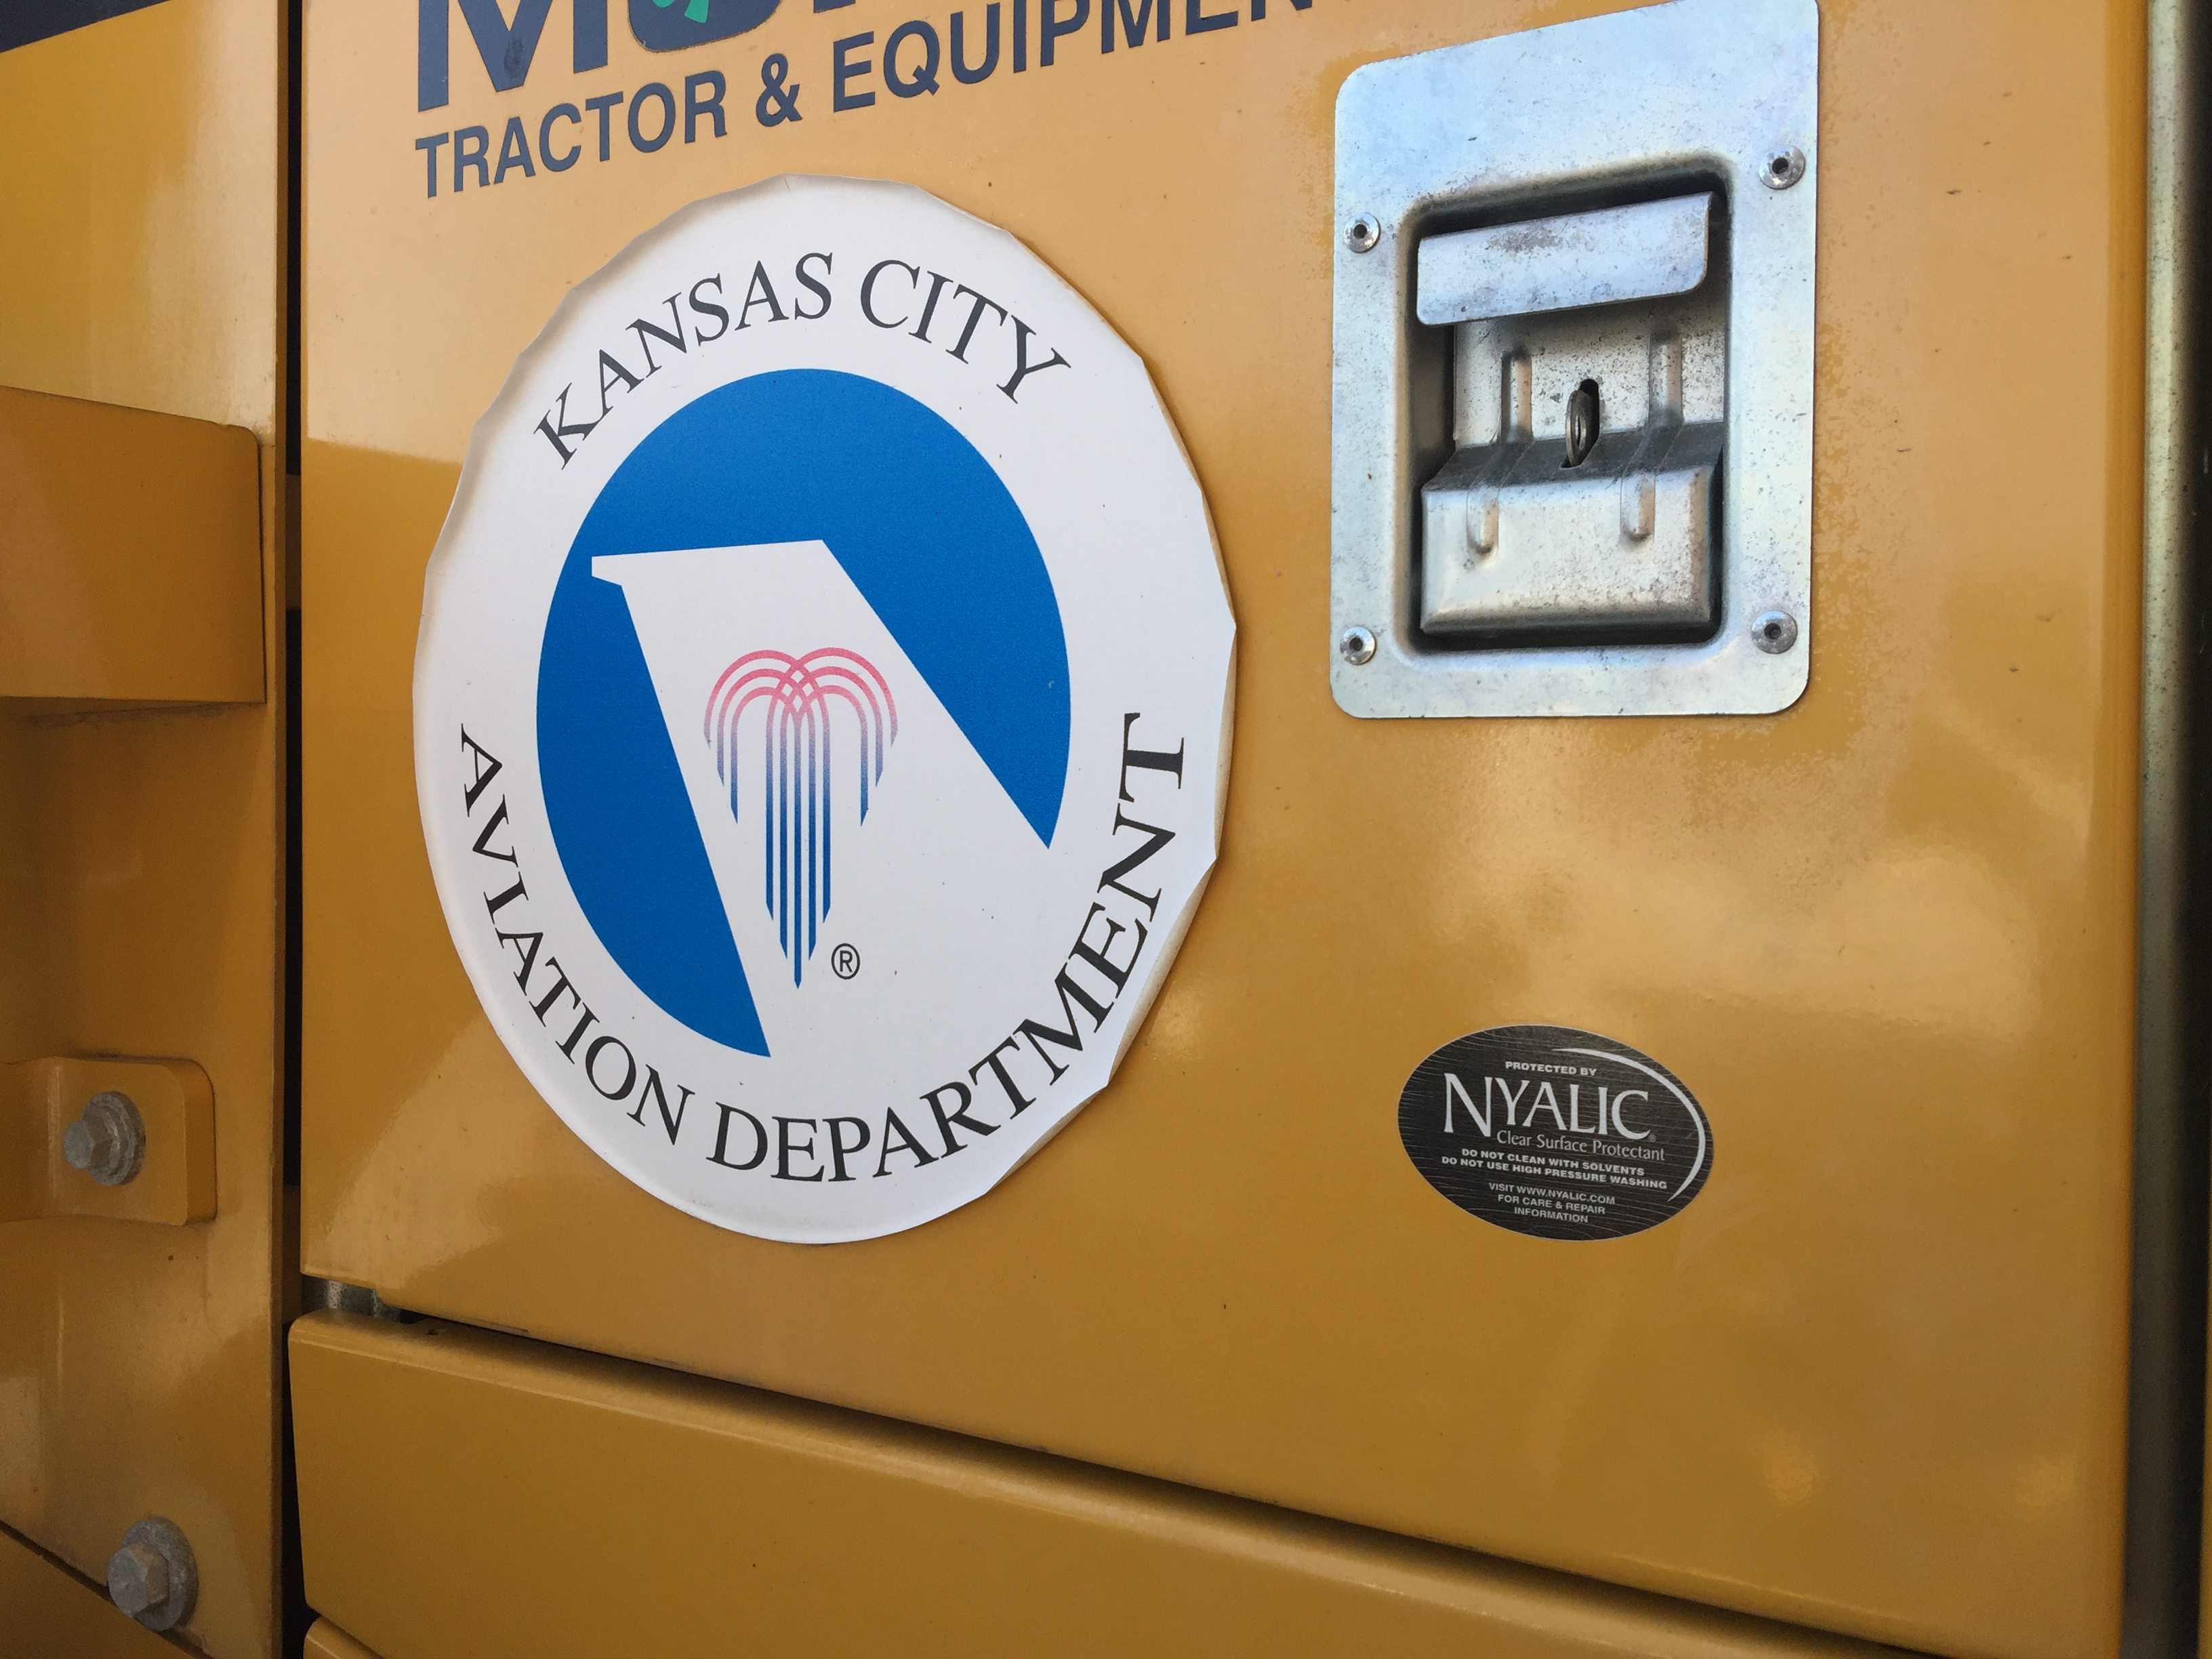 Nyalic® Coated Wheel Loaders at Kansas City Airport